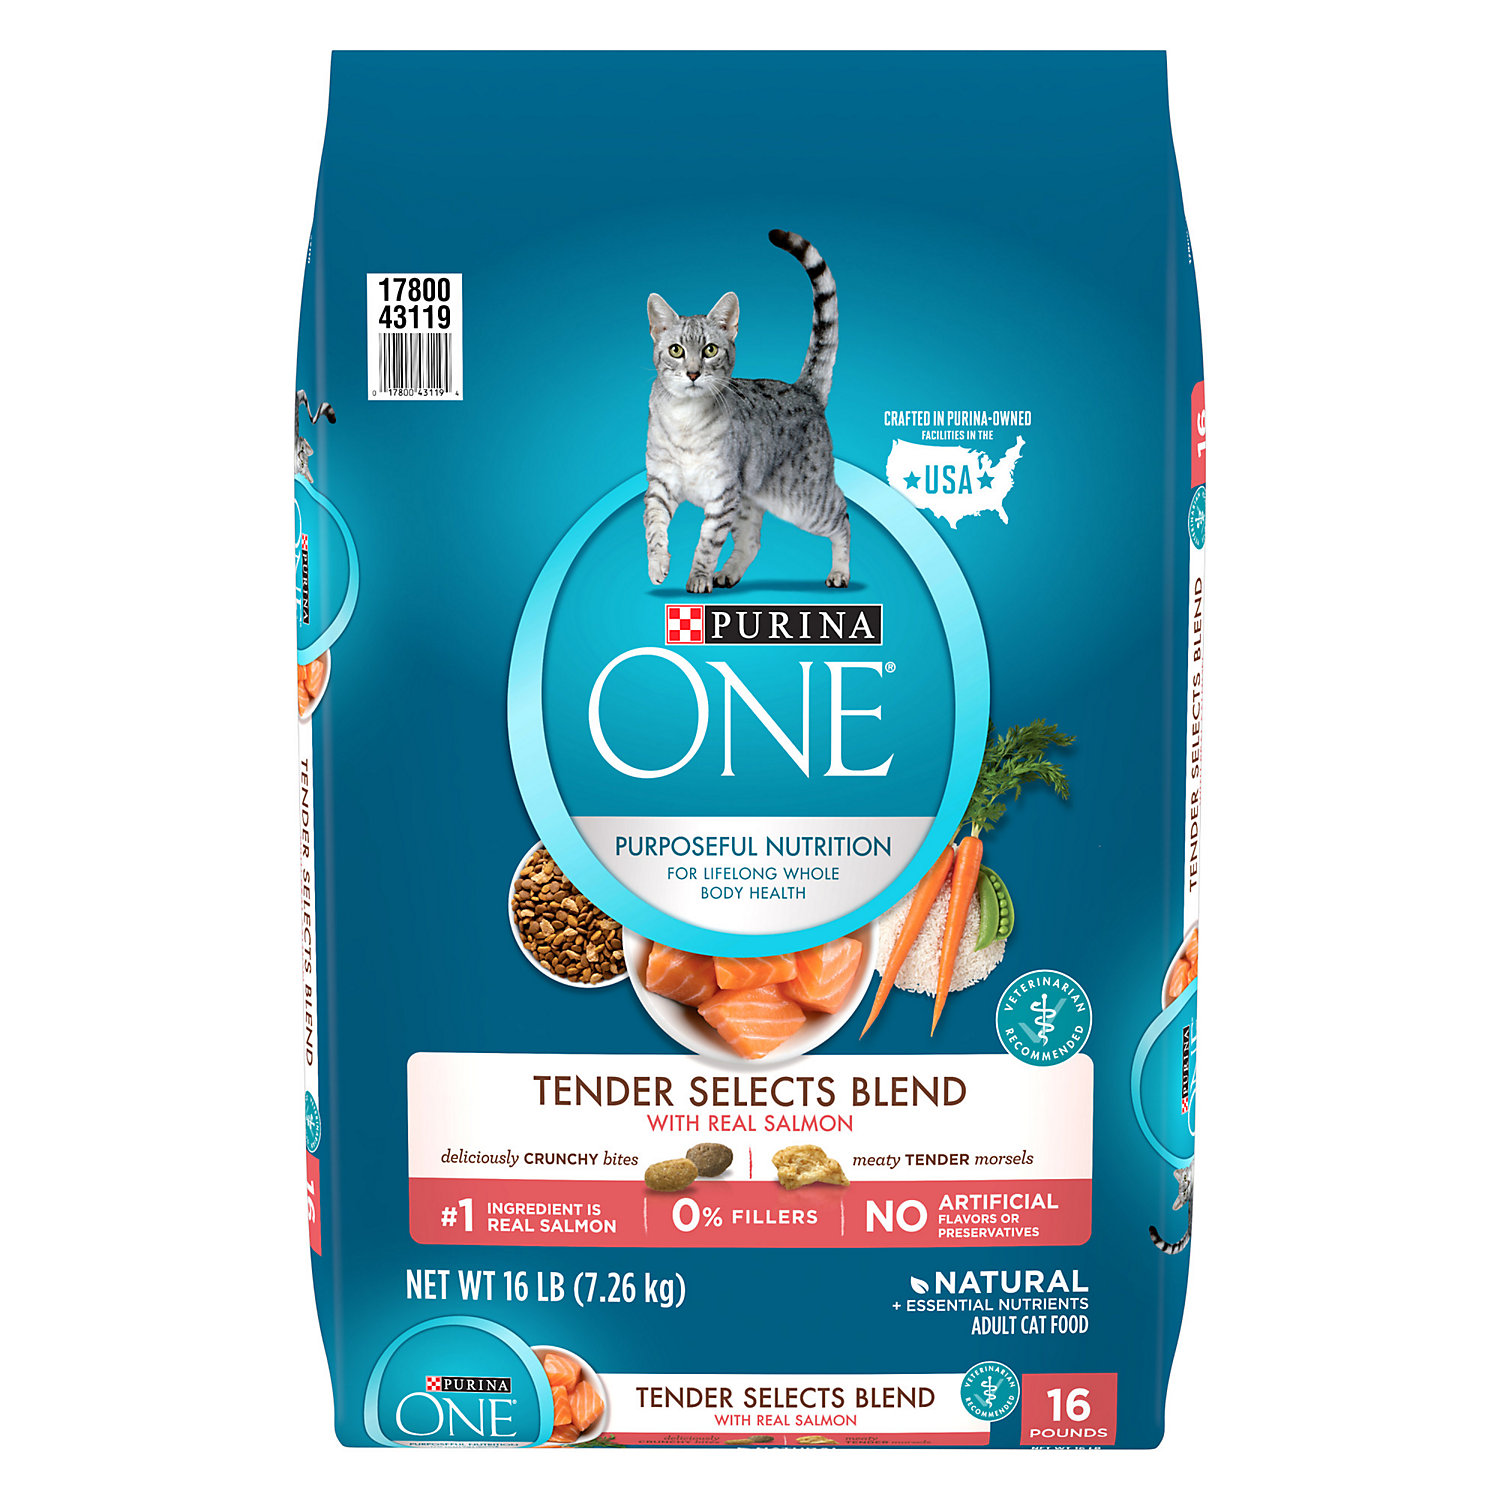 Purina One Tender Selects Salmon Tuna Flavor Cat Food 7 Lbs.